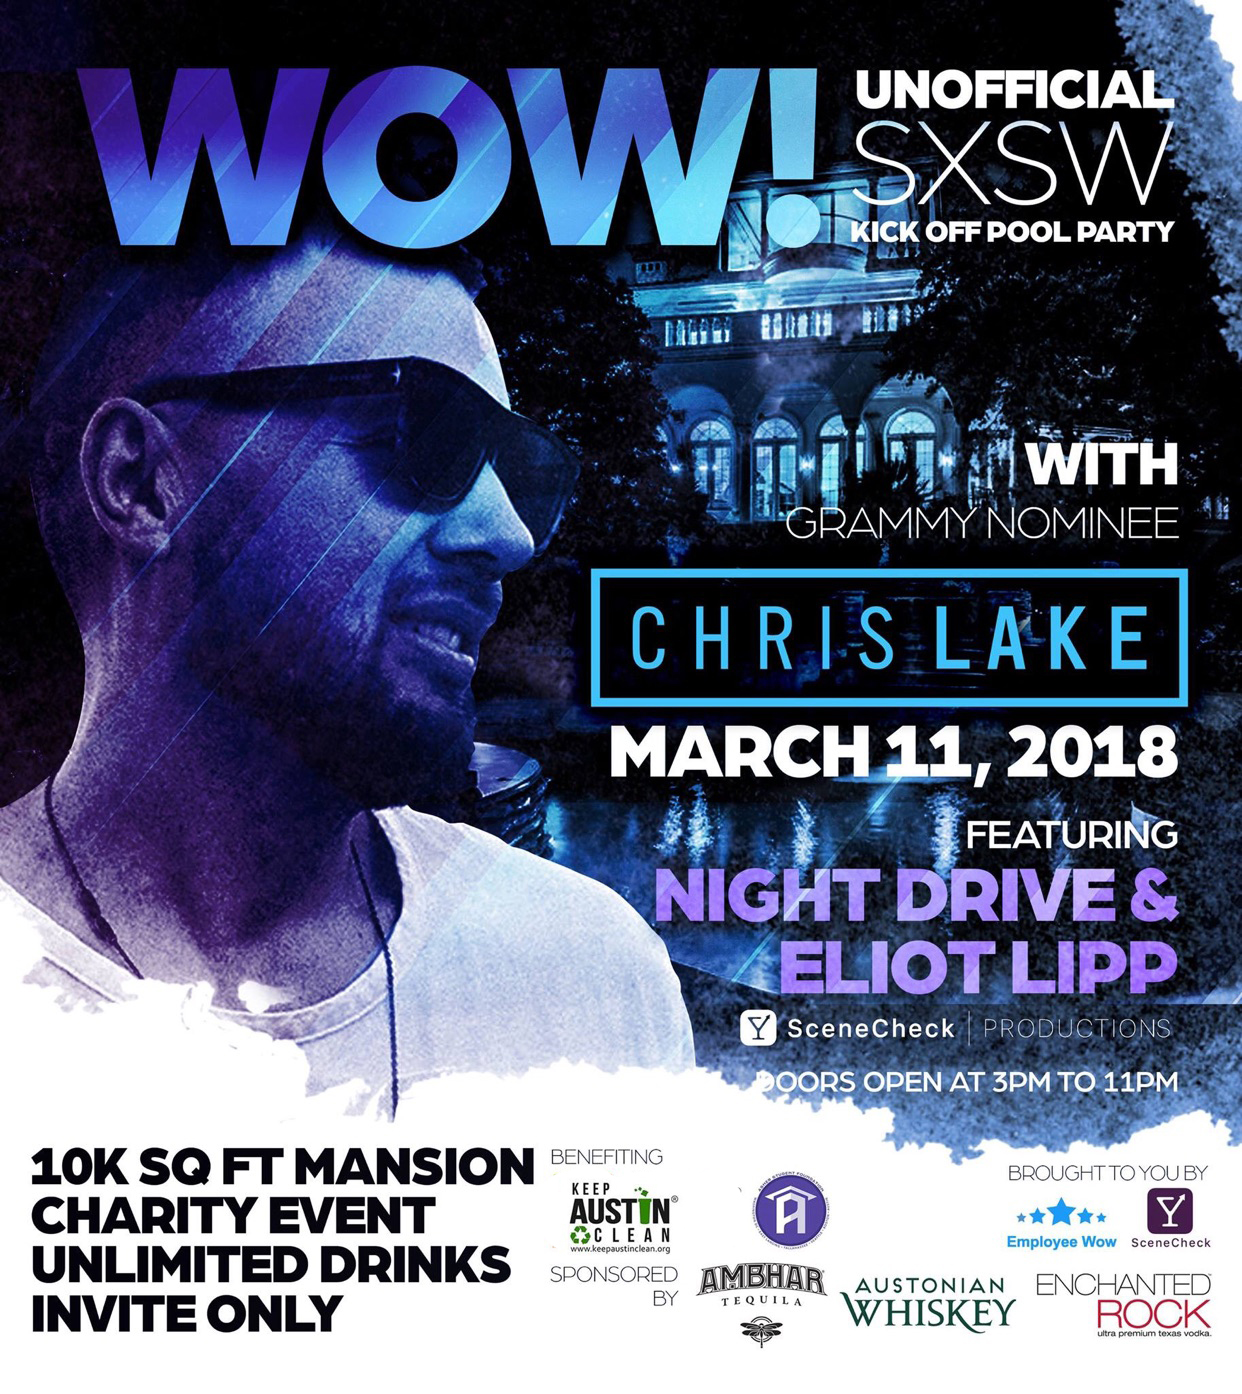 Employee Wow Announces A Charity Event Artist Line Up Playing At